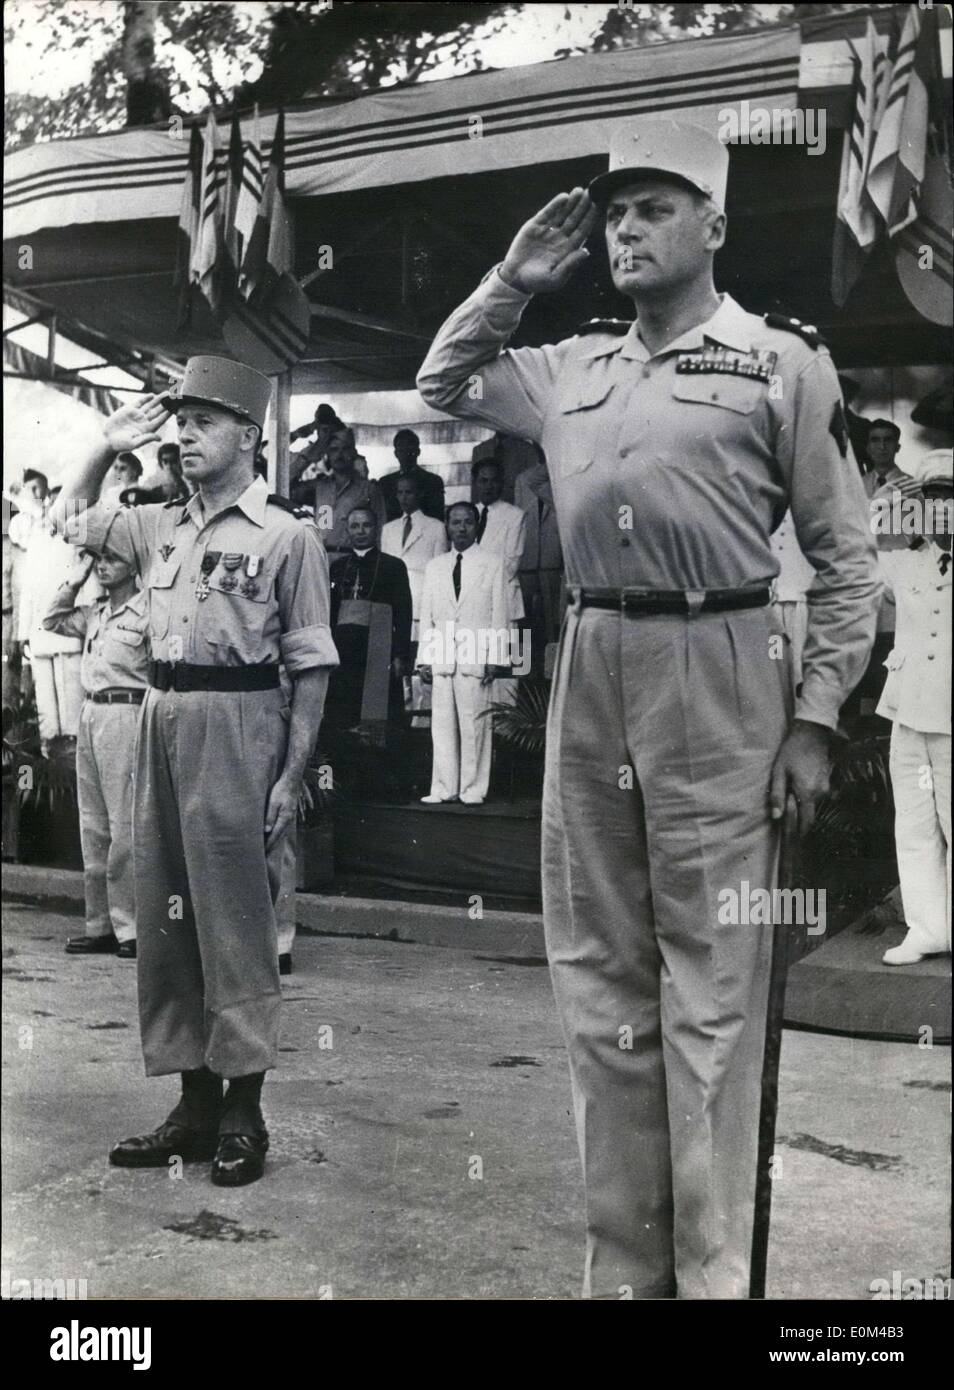 Jul. 24, 1953 - Bastille Day was celebrated in Hanoi by ceremonies on a major scale. General Cogny, commanding the TTNV, salutes the flags. General Masson is to his right. - Stock Image